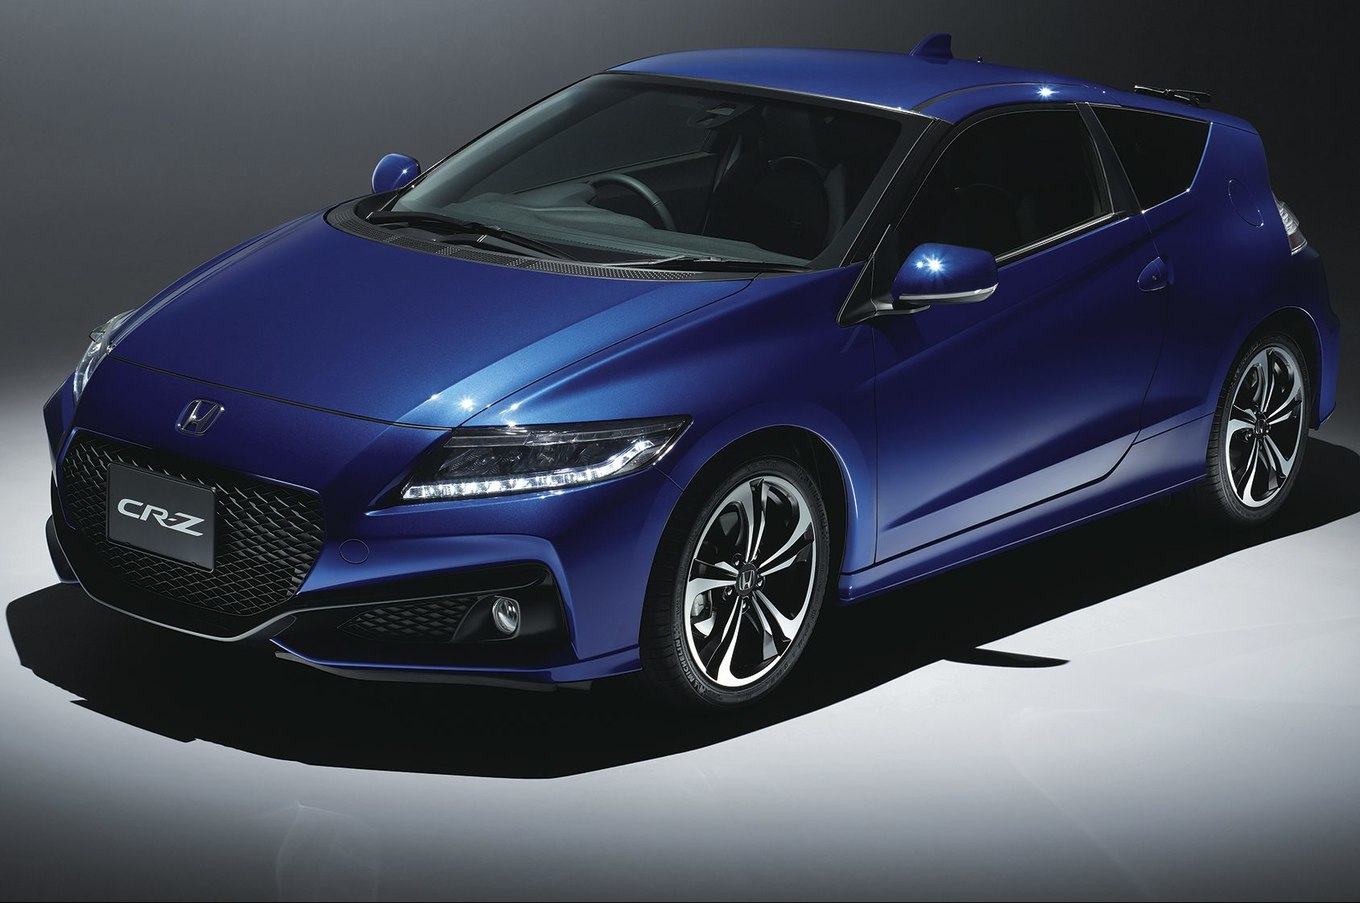 Honda crz photo - 7